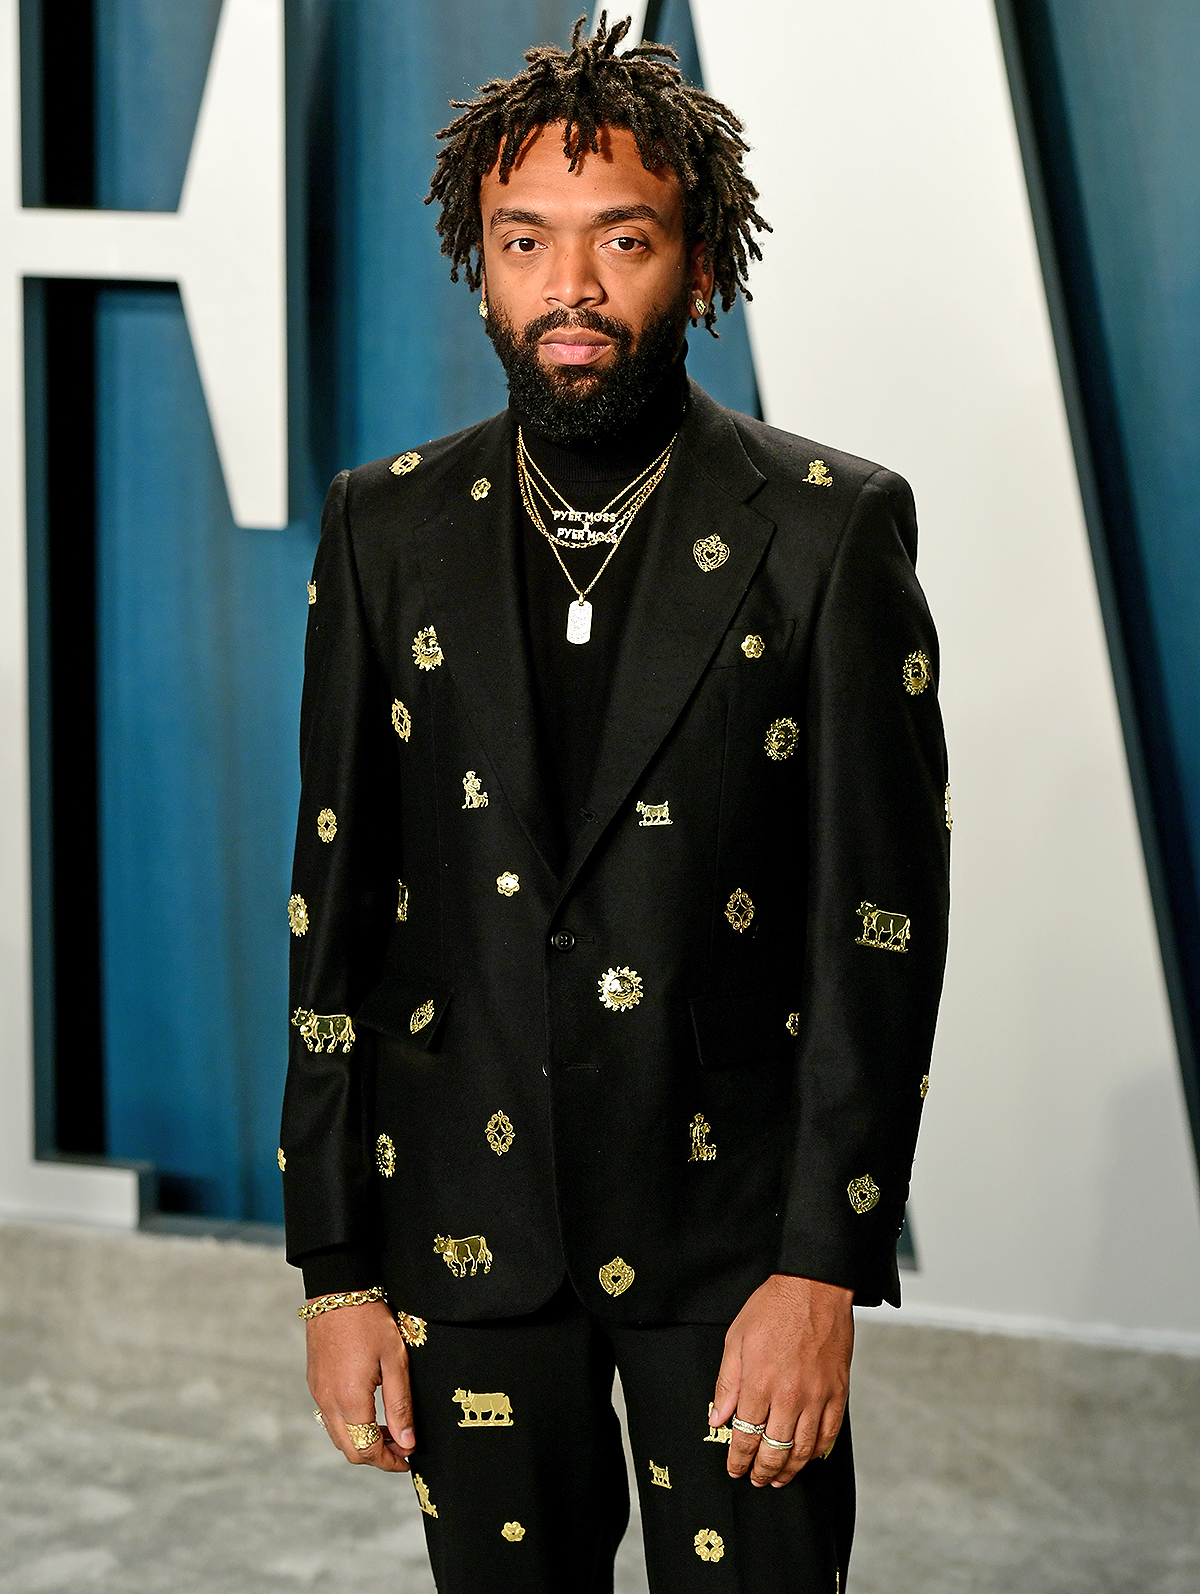 Kerby Jean-Raymond attending the Vanity Fair Oscar Party held at the Wallis Annenberg Center for the Performing Arts in Beverly Hills, Los Angeles